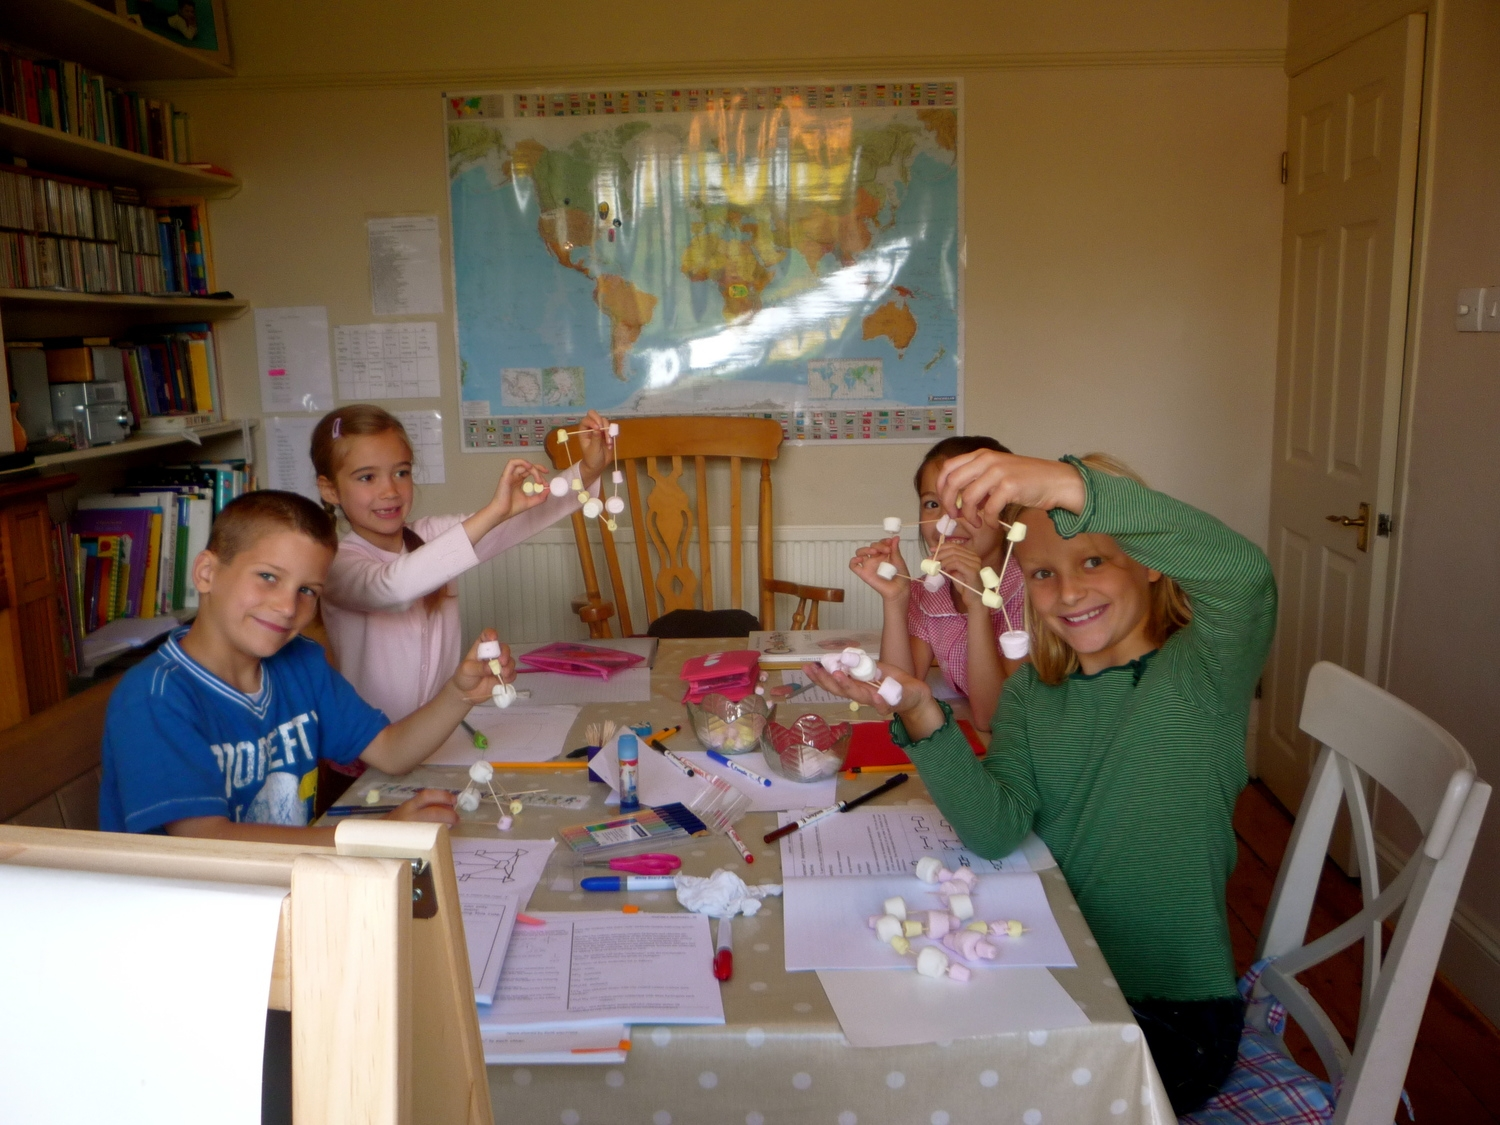 In Bristol, 2009. Marshmallow molecules the home school way, a few months before Mathilda became sick. From Left to right: Elliot, Heather-Rose, Hannah-Jane, and Liberty. Our kitchen was our classroom too. Hannah is now 14 and about to sit her chemistry GCSE. Go Hannah-Jane!